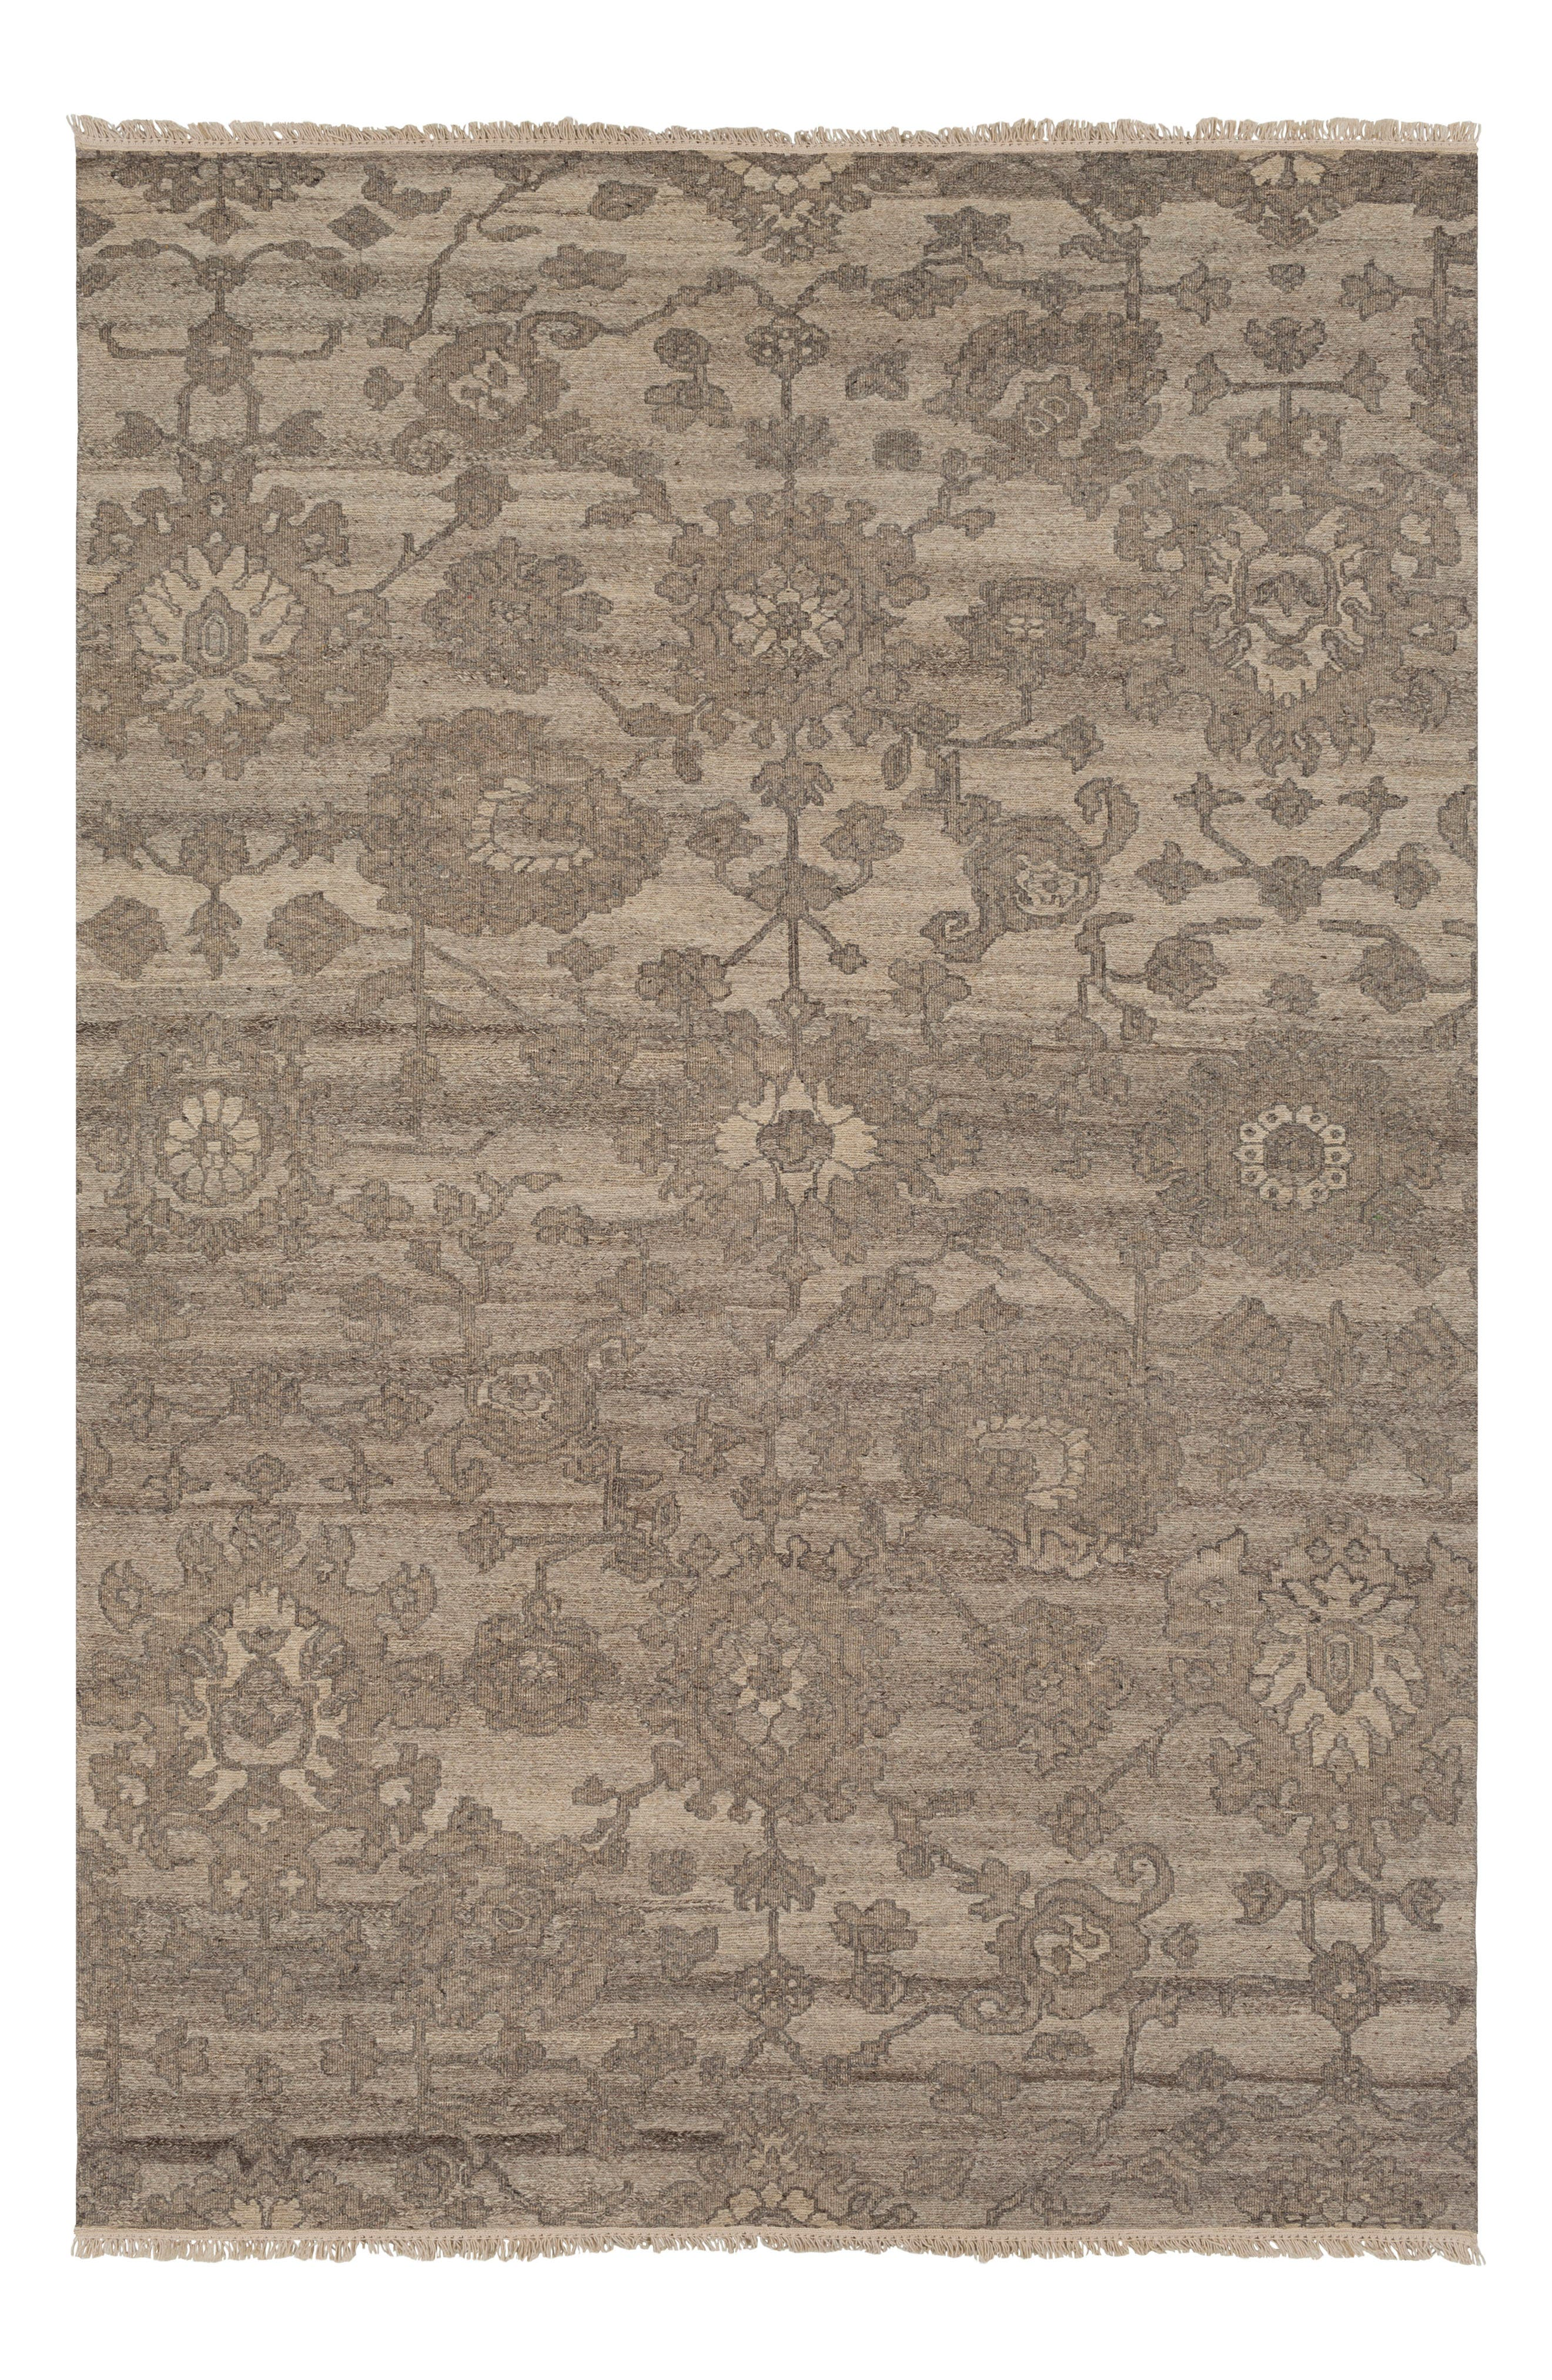 Ethereal Area Rug,                         Main,                         color, 250